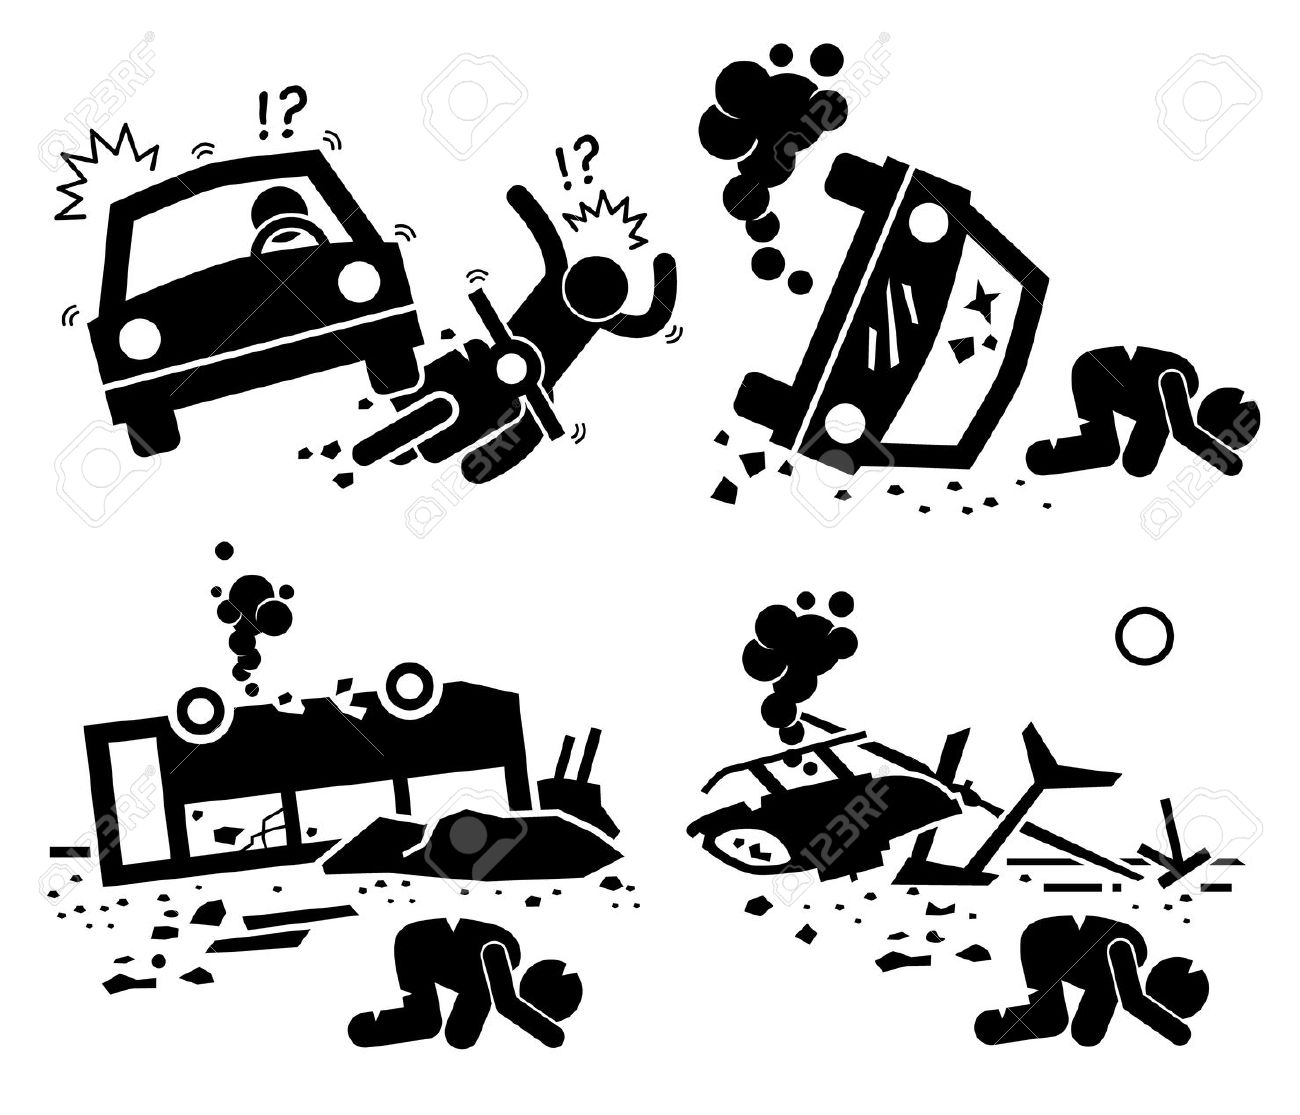 Disaster Accident Tragedy Of Car Motorcycle Collision, Bus Crash.